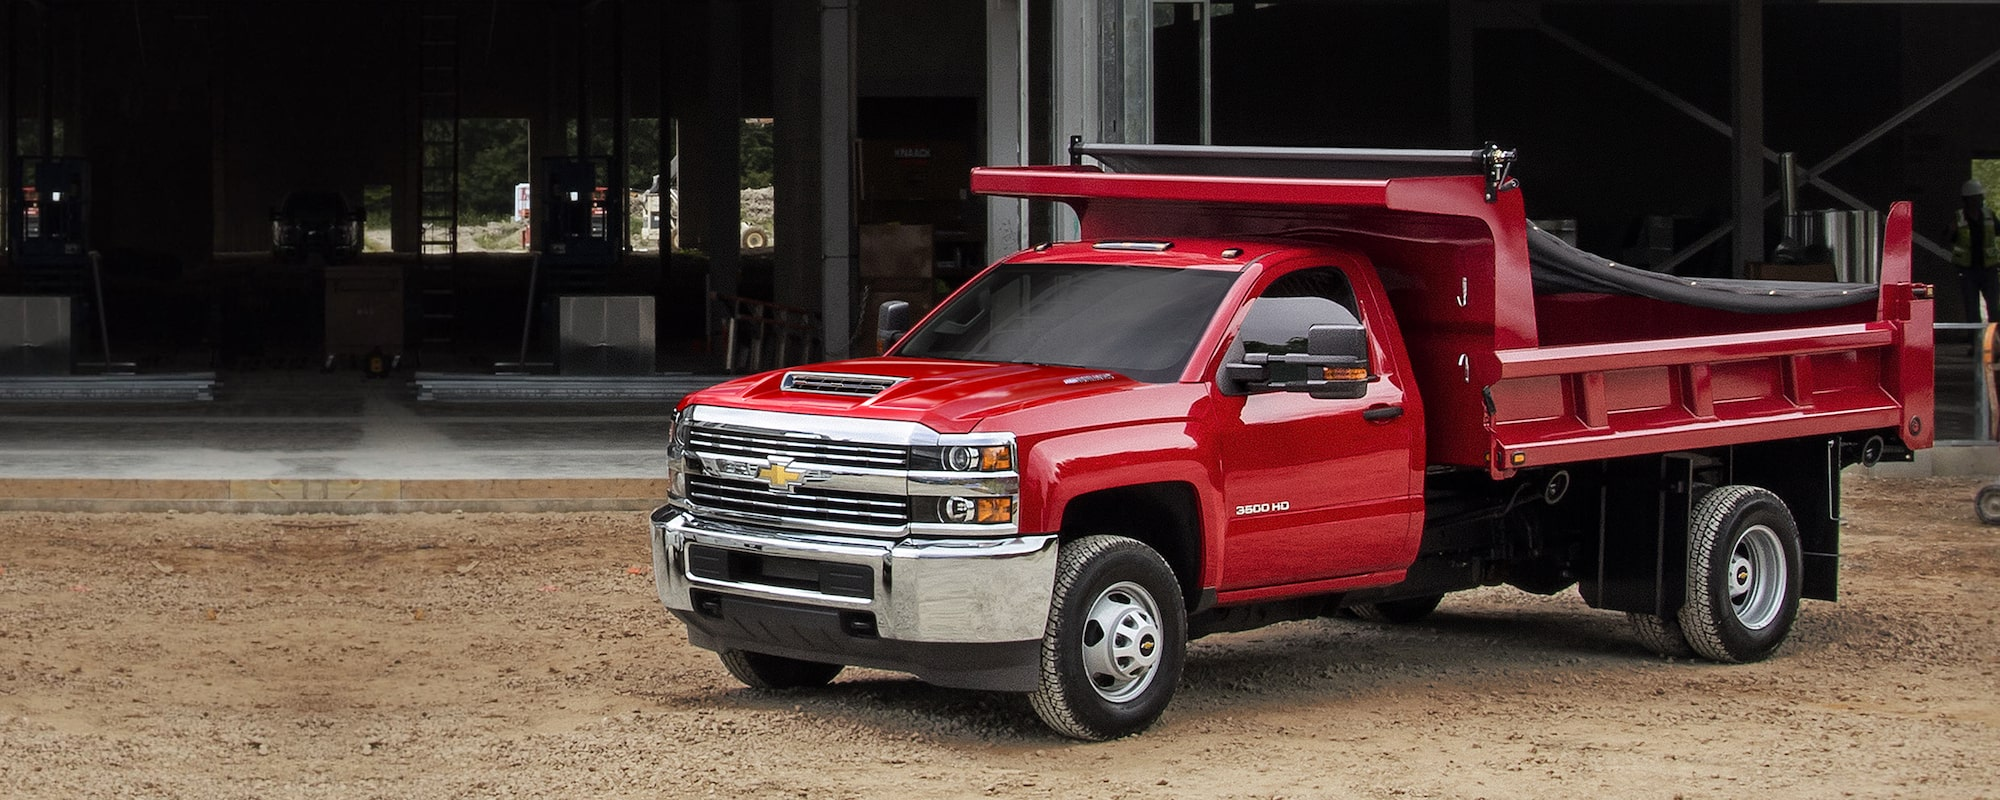 05 Chevy C5500 Duramax Wiring Diagram Schematic Electronic 2005 Gmc Engine 2018 Silverado 3500hd Chassis Cab Chevroletrhchevrolet At Selfit